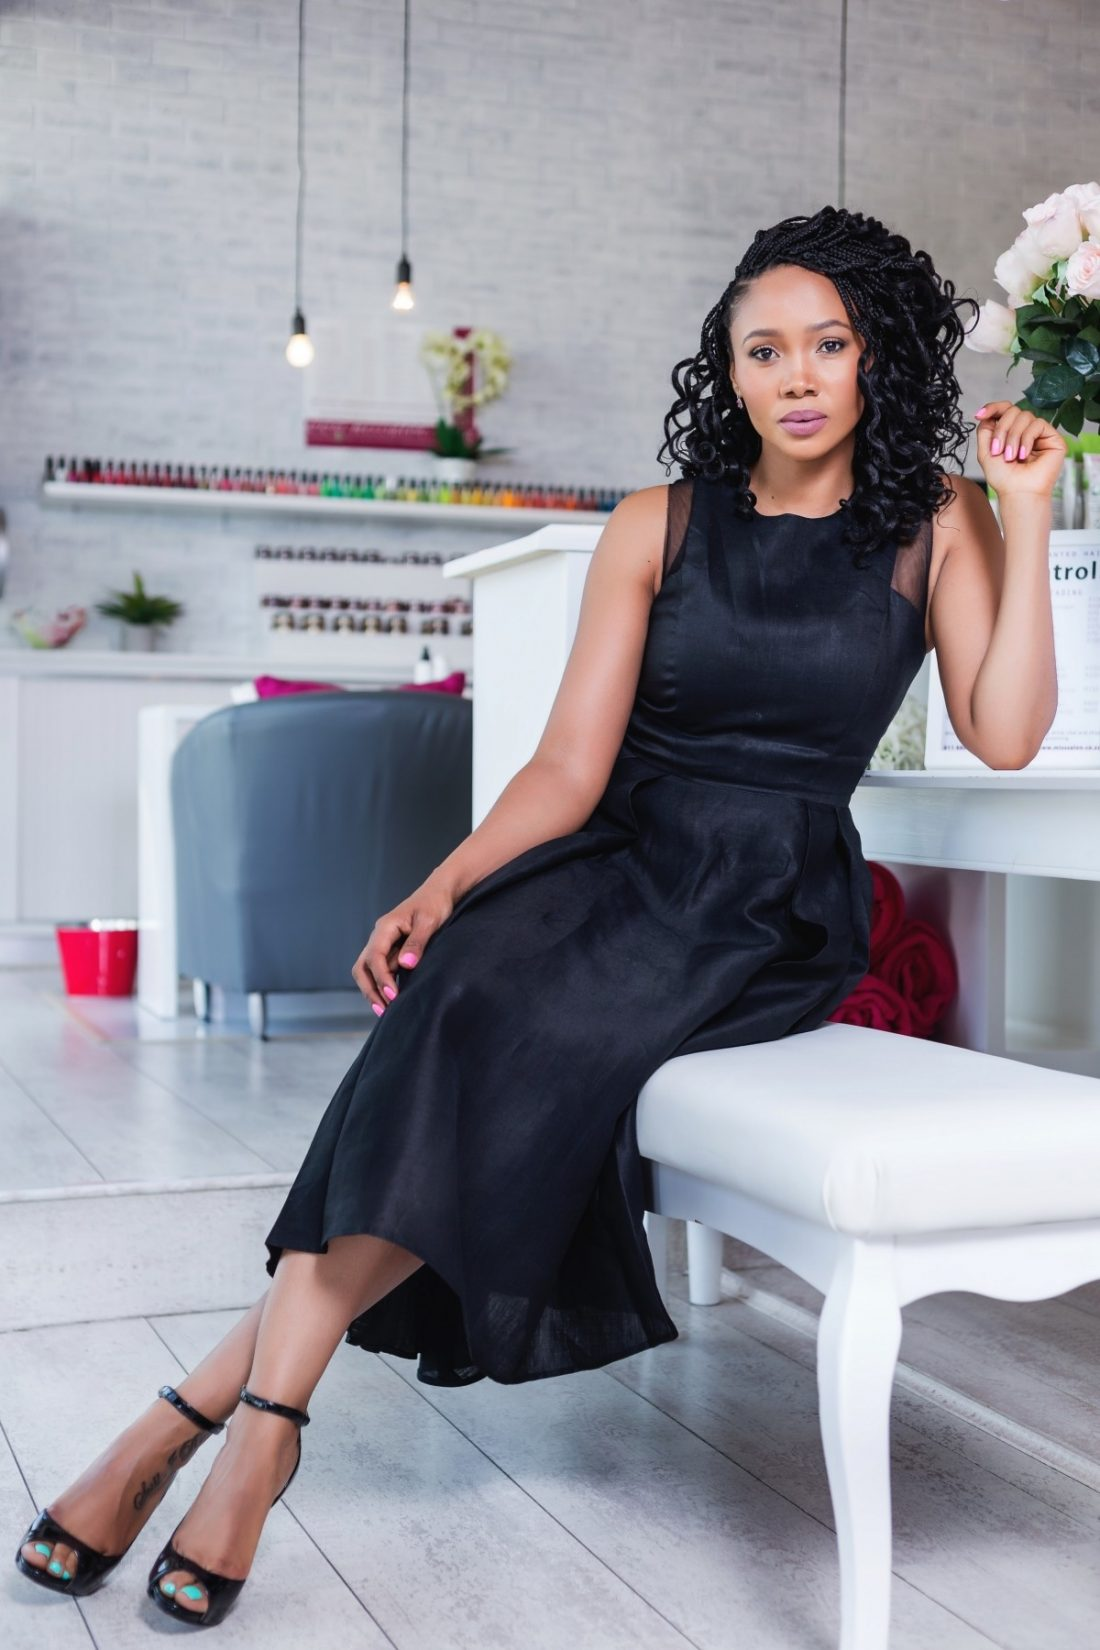 Azania Mosaka On How Overworking Herself Made Her Anxious And Unhappy